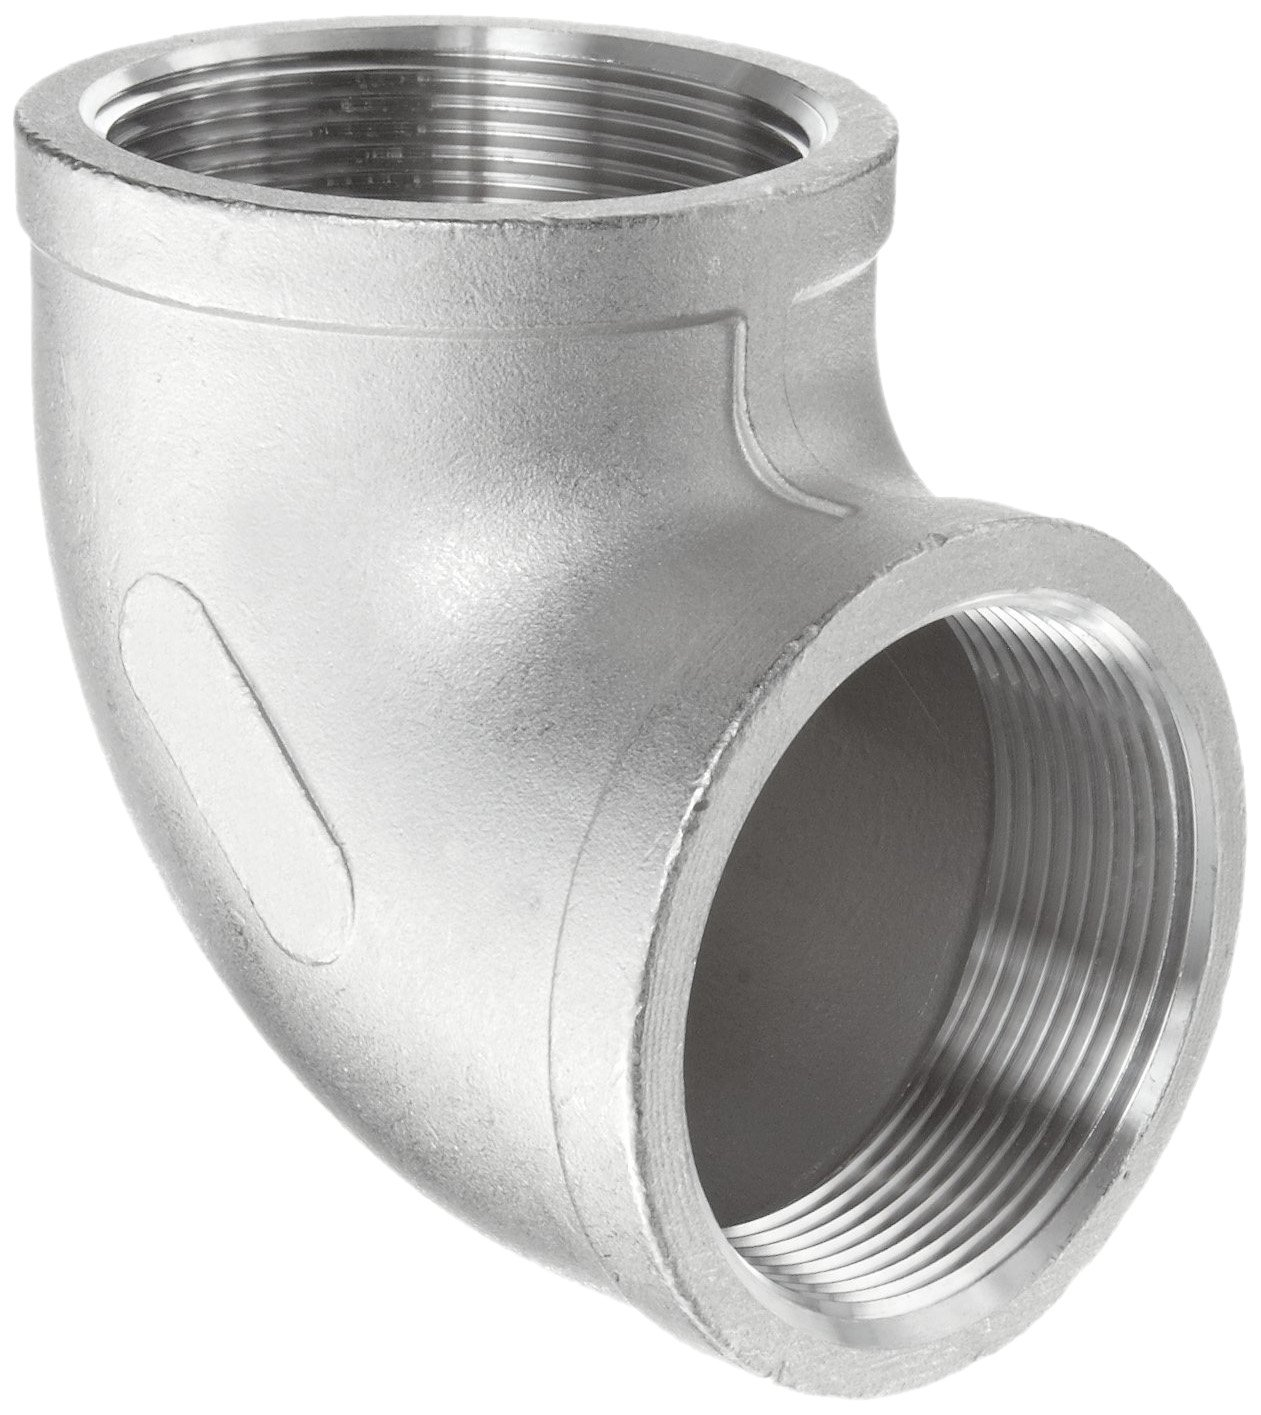 Merit Brass Stainless Steel 316 Cast Pipe Fitting, 90 Degree Elbow, Class 150, 3/4'' National Pipe Taper Thread Female (Pack of 25)